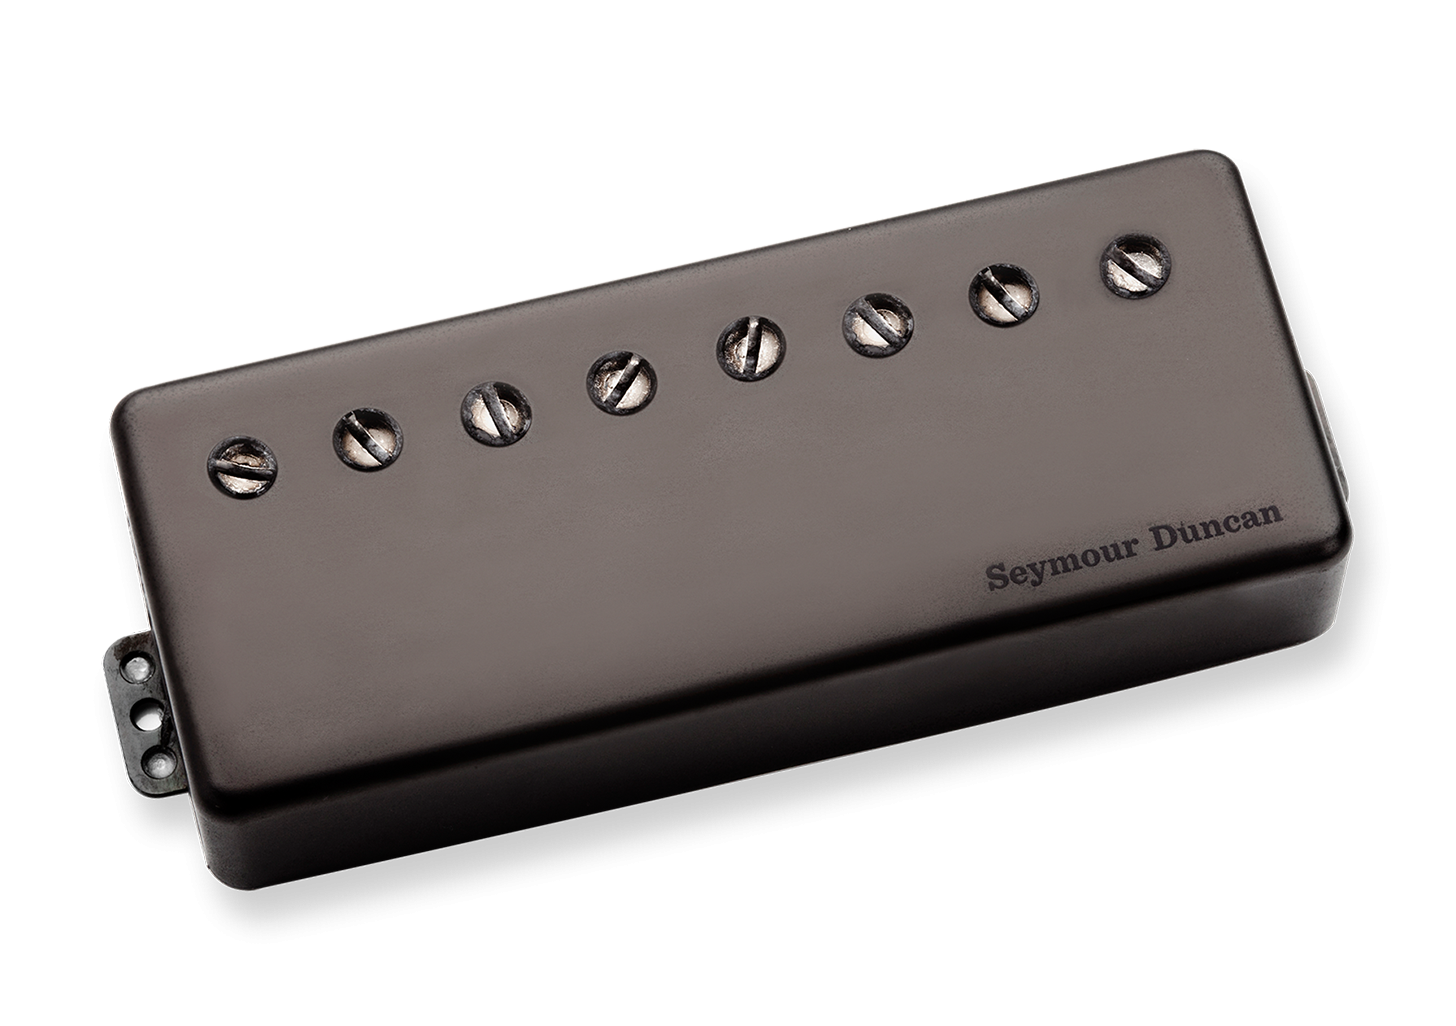 Seymour Duncan Duncan Distortion Humbucker - SH-6N Neck 8 String Passive Mount Black Metal